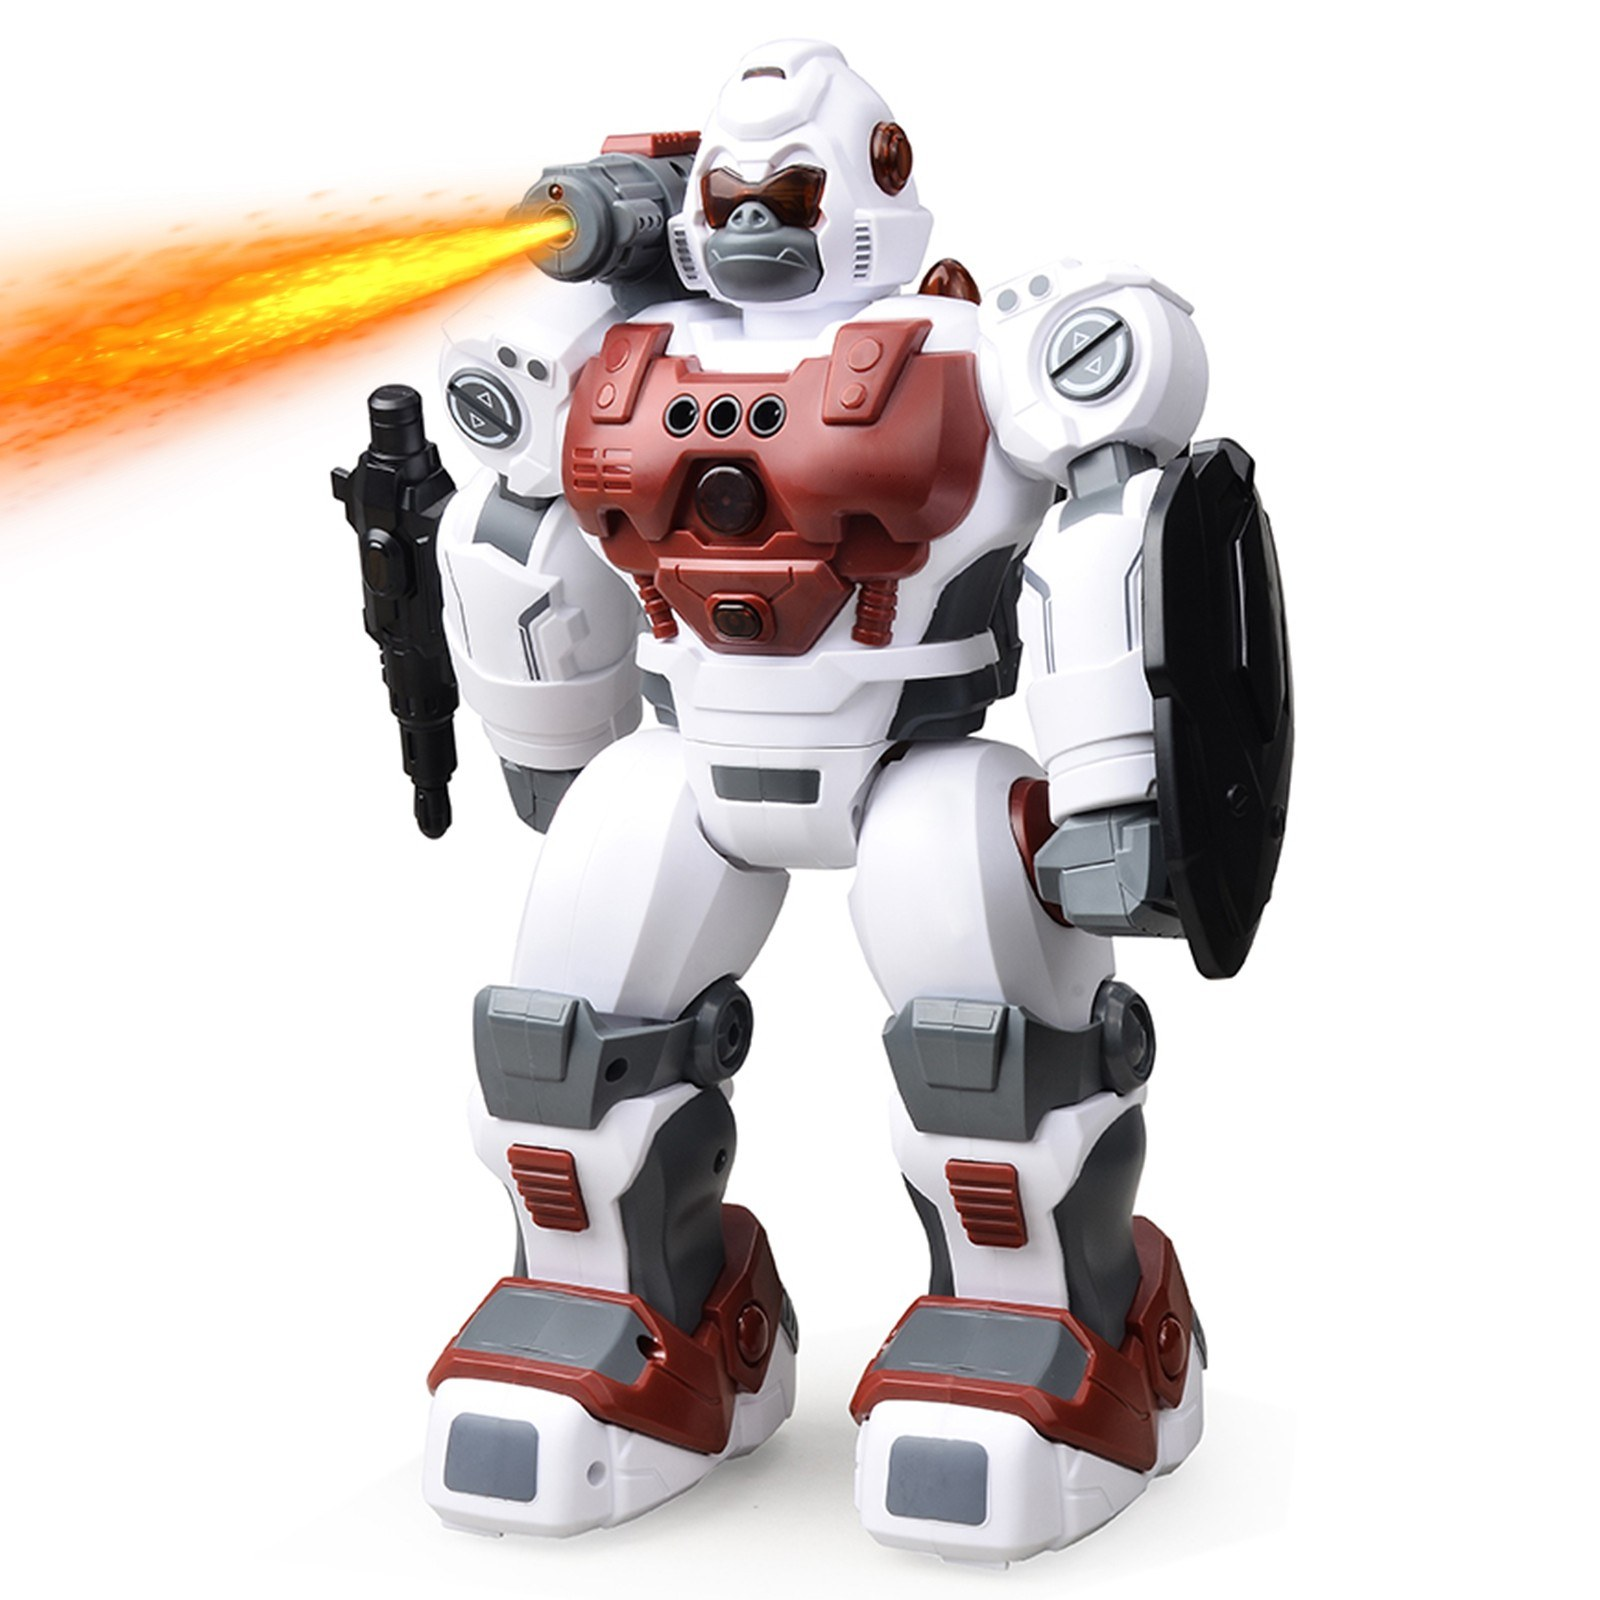 tomtop.com - 63% OFF RC Robot Spray Police Robot with Gesture Sensing Automatic Demonstration, $41.99 (Inclusive of VAT)